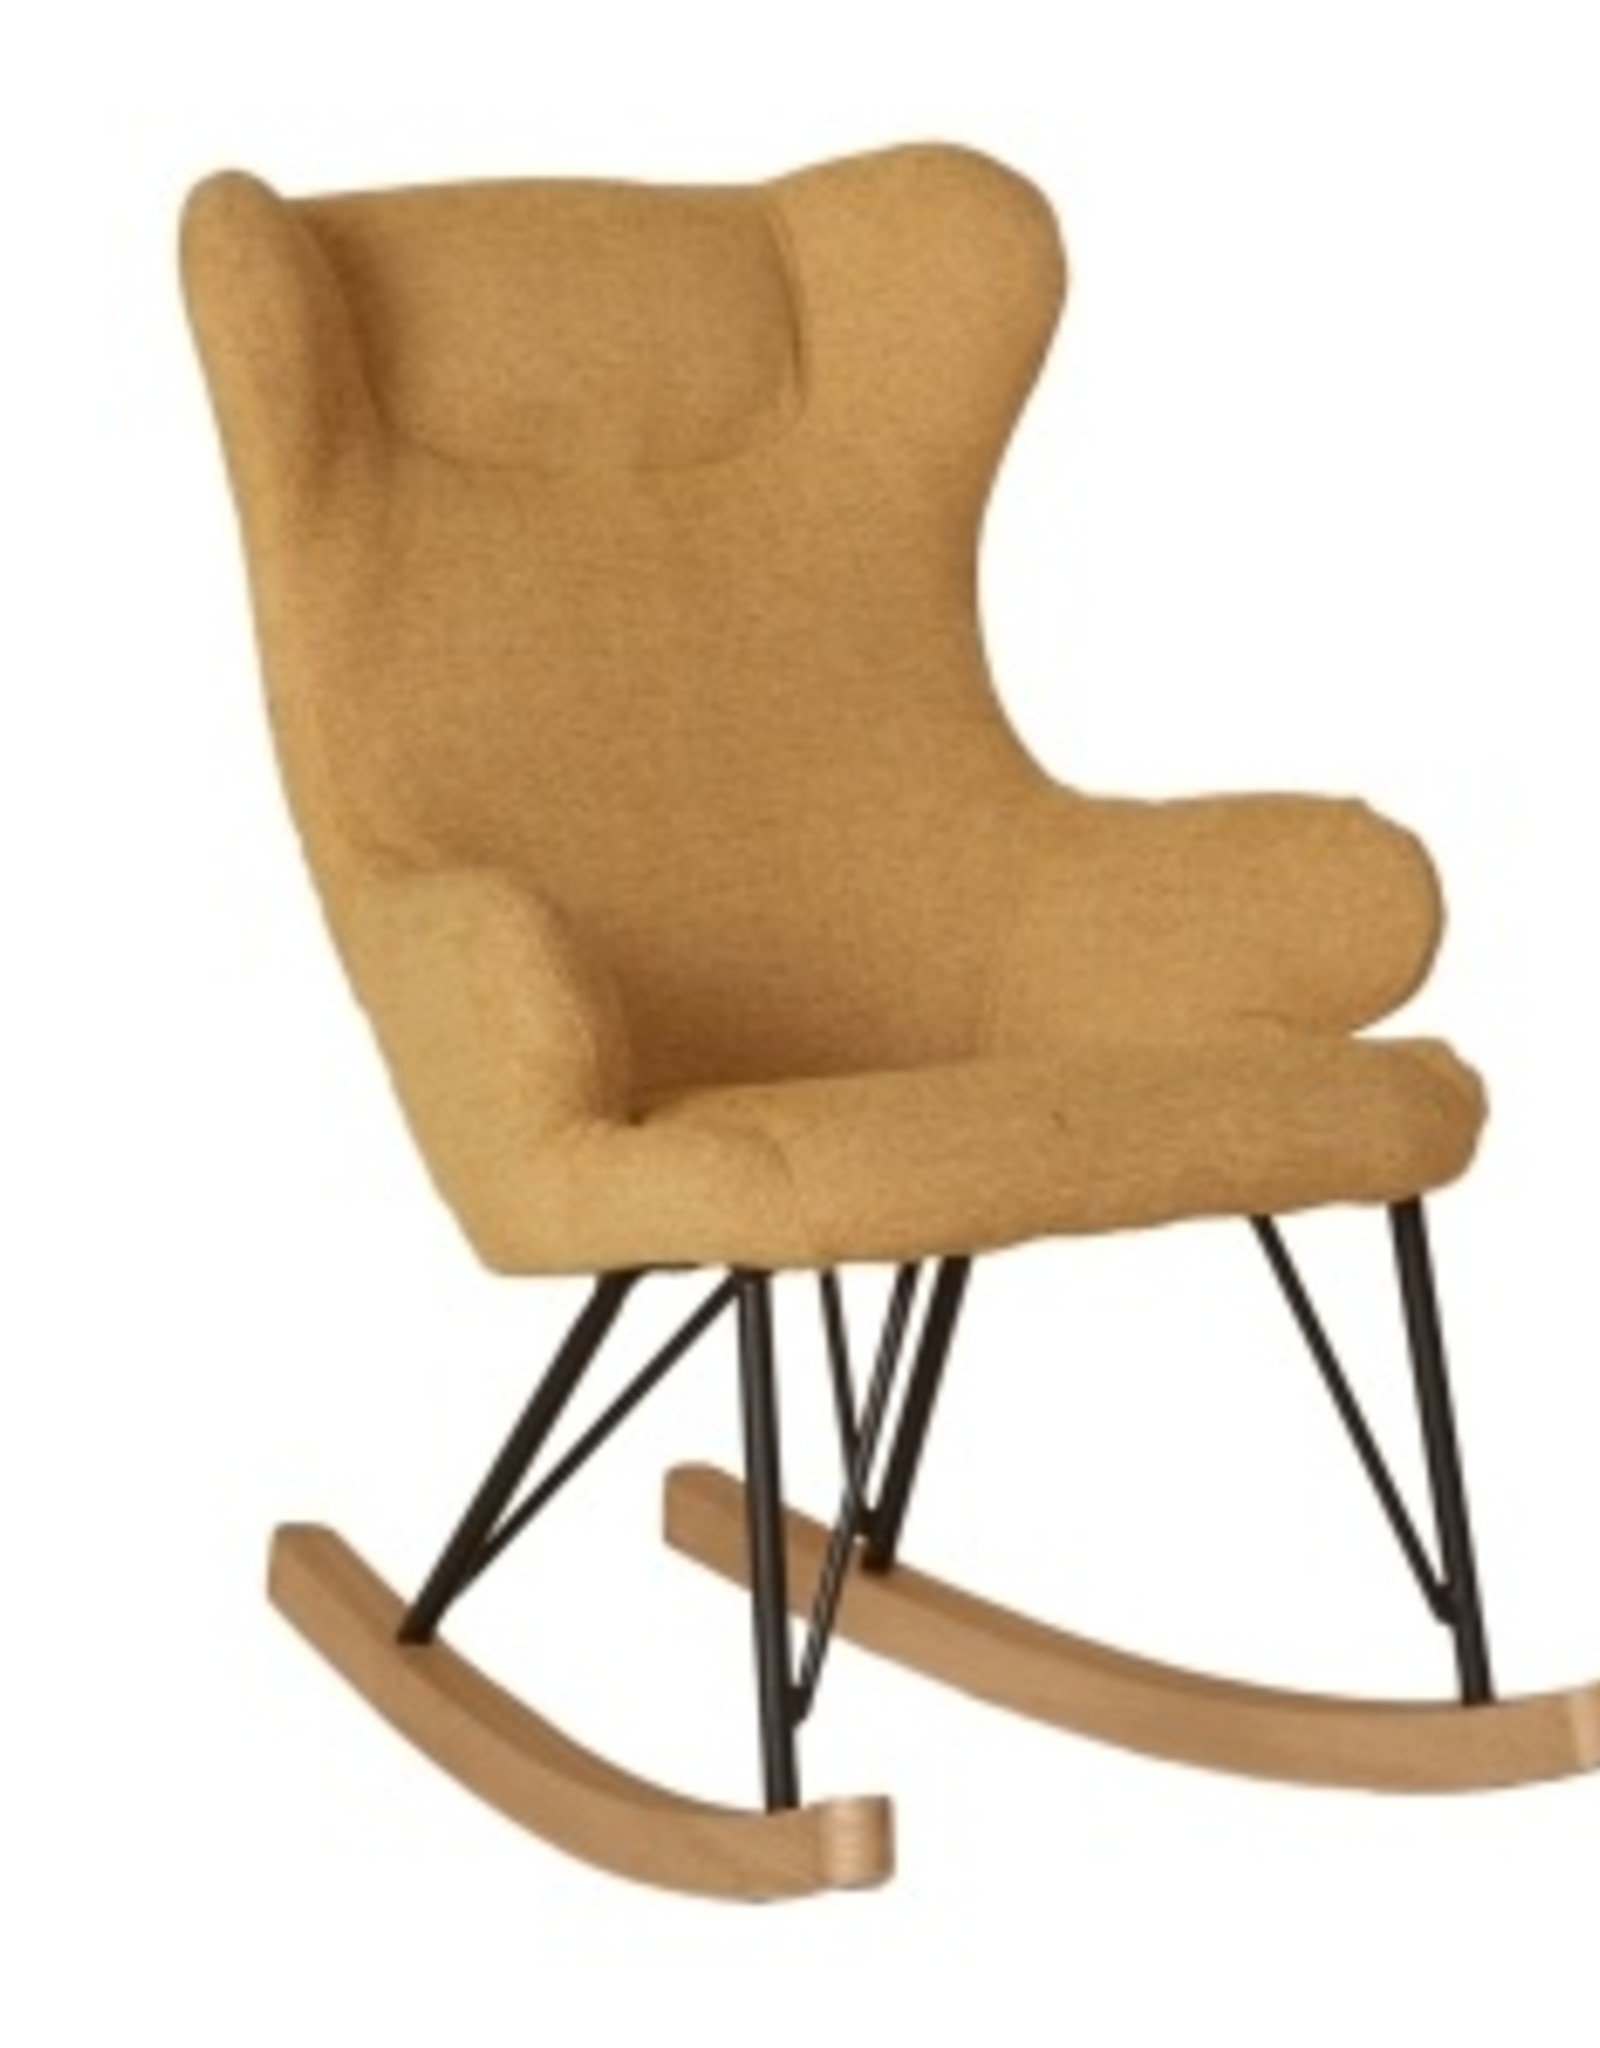 Quax Rocking Kids Chair De Luxe - Saffran